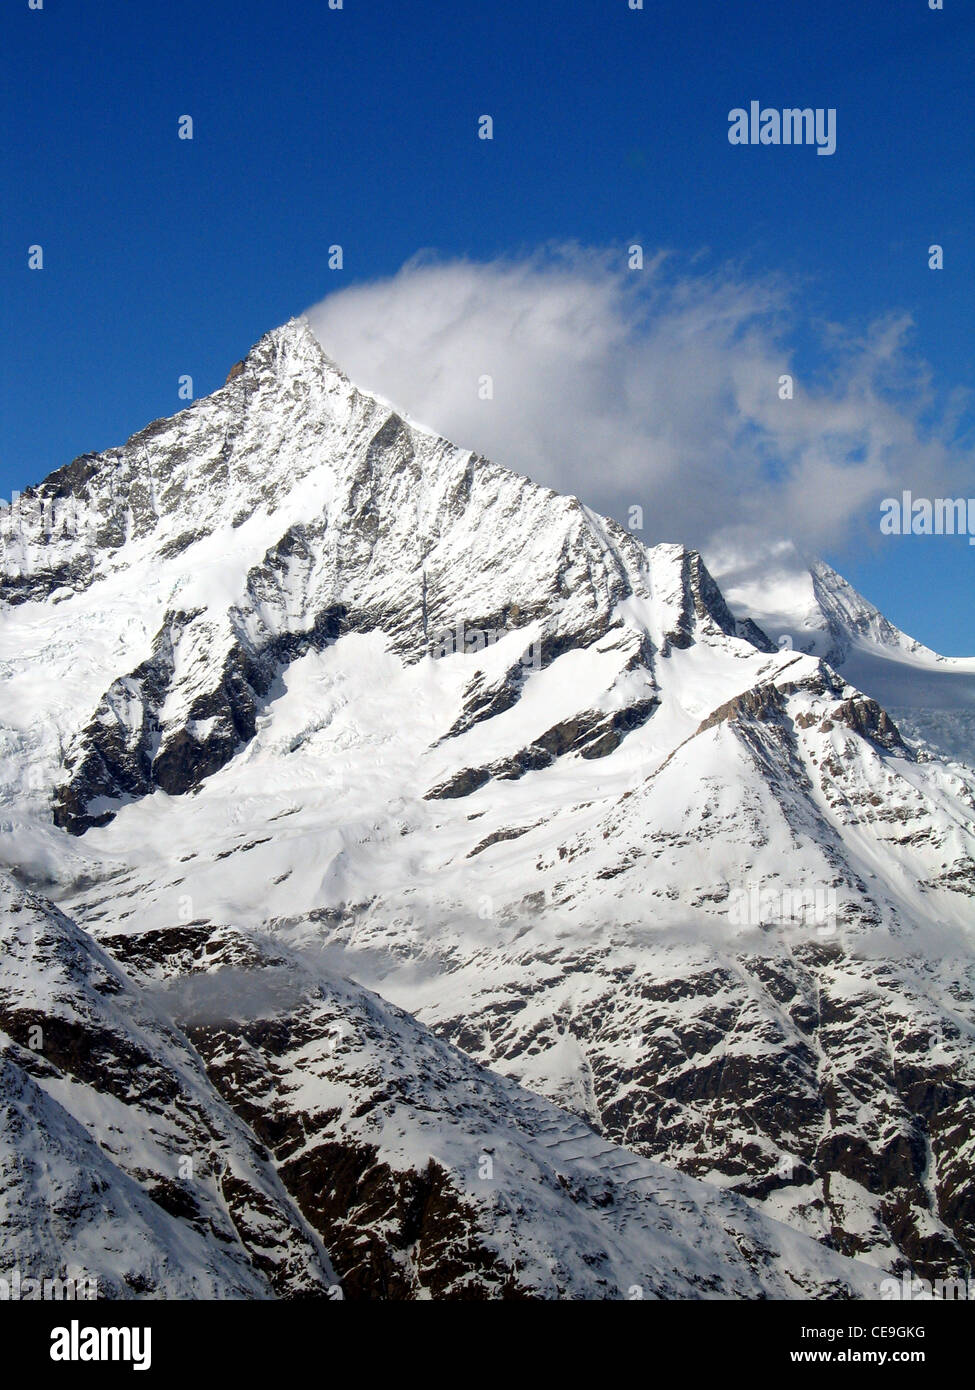 View of the Matterhorn, Monte Cervino or Mont Cervin mountain in the Pennine Alps on the border between Switzerland Stock Foto